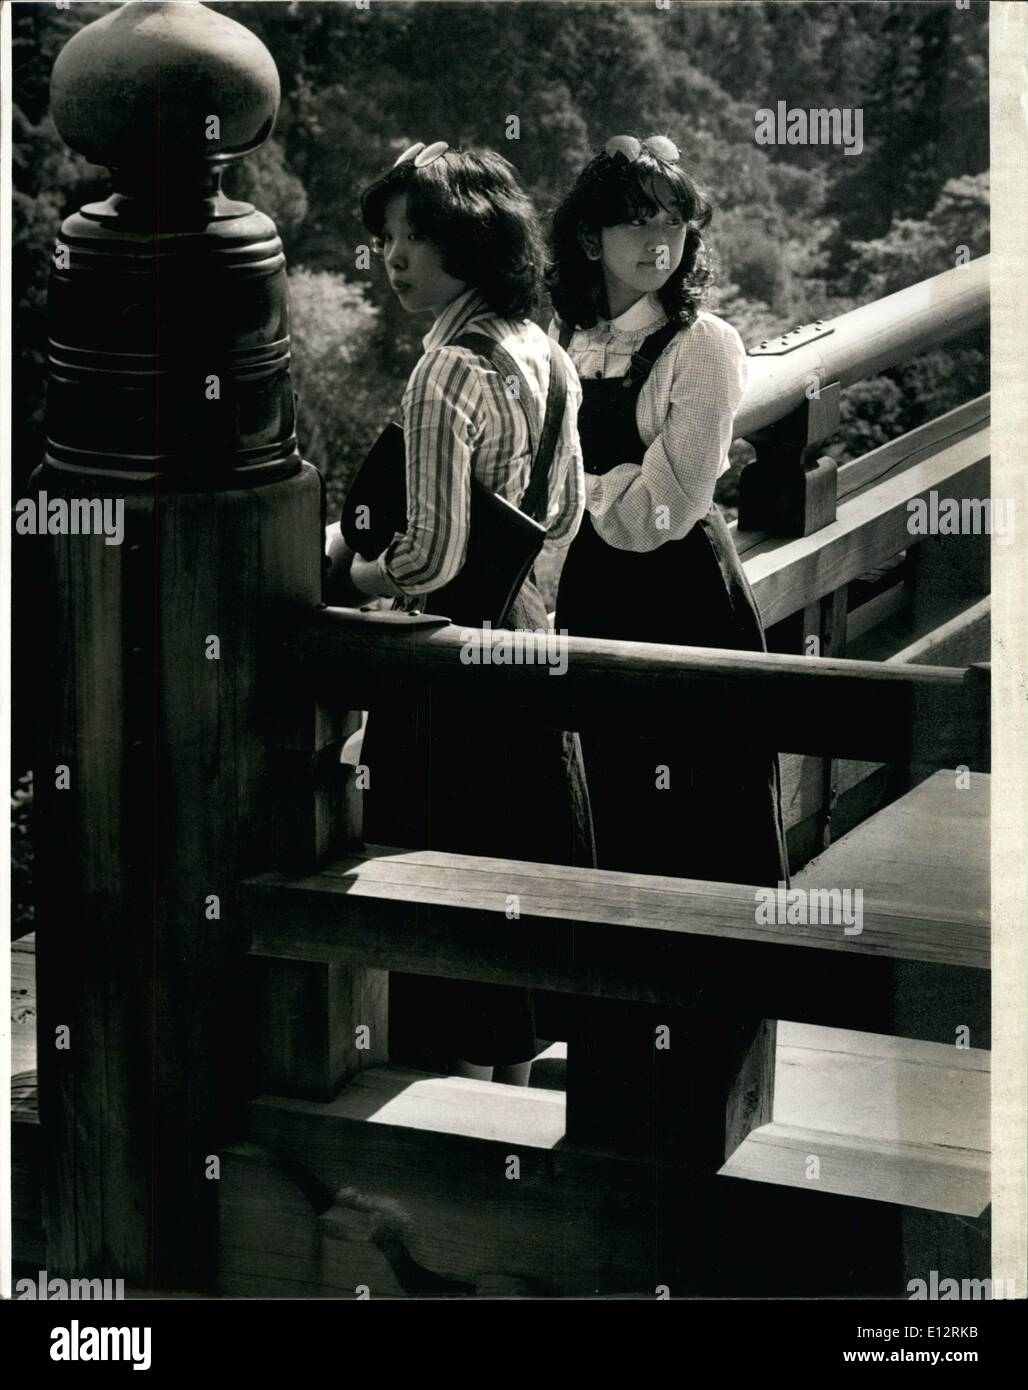 Feb. 25, 2012 - April 1975, Kyoto, Japan – Japanese students visiting an ancient shrine in Kyoto., Japan. : - Stock Image